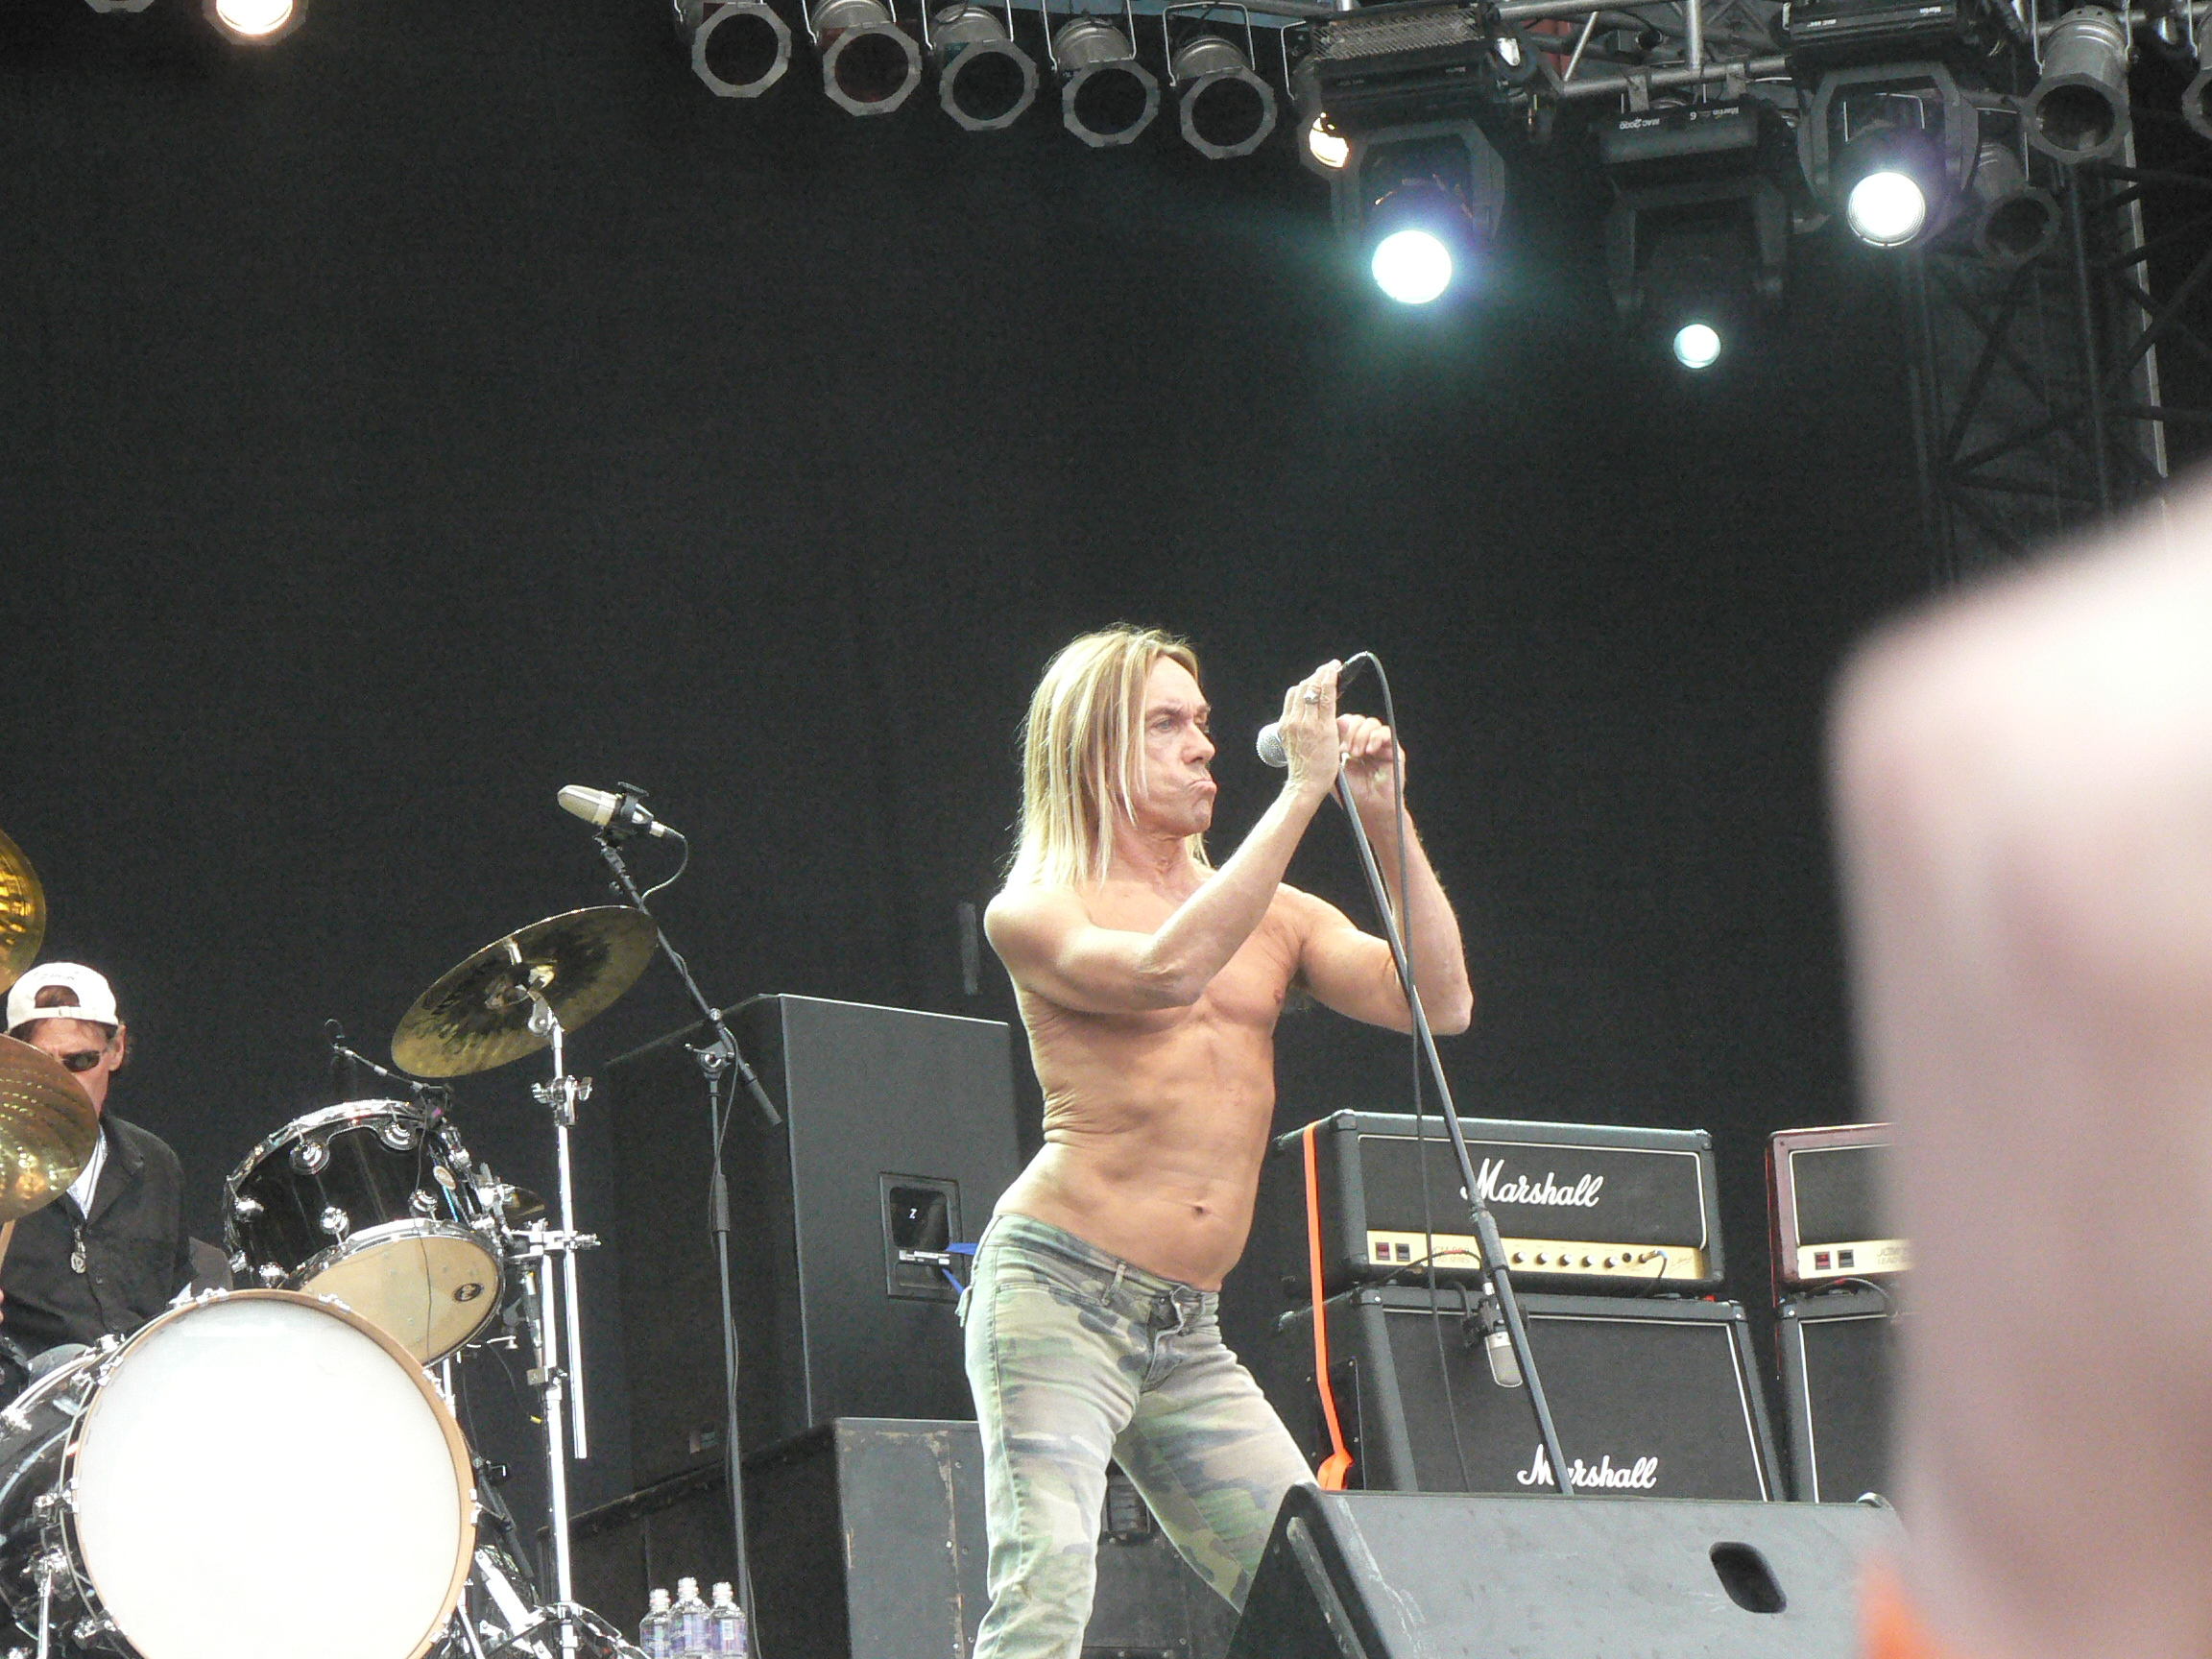 http://upload.wikimedia.org/wikipedia/commons/6/6c/Iggy_Pop_stand_-_Sziget_Fest_2006.jpg